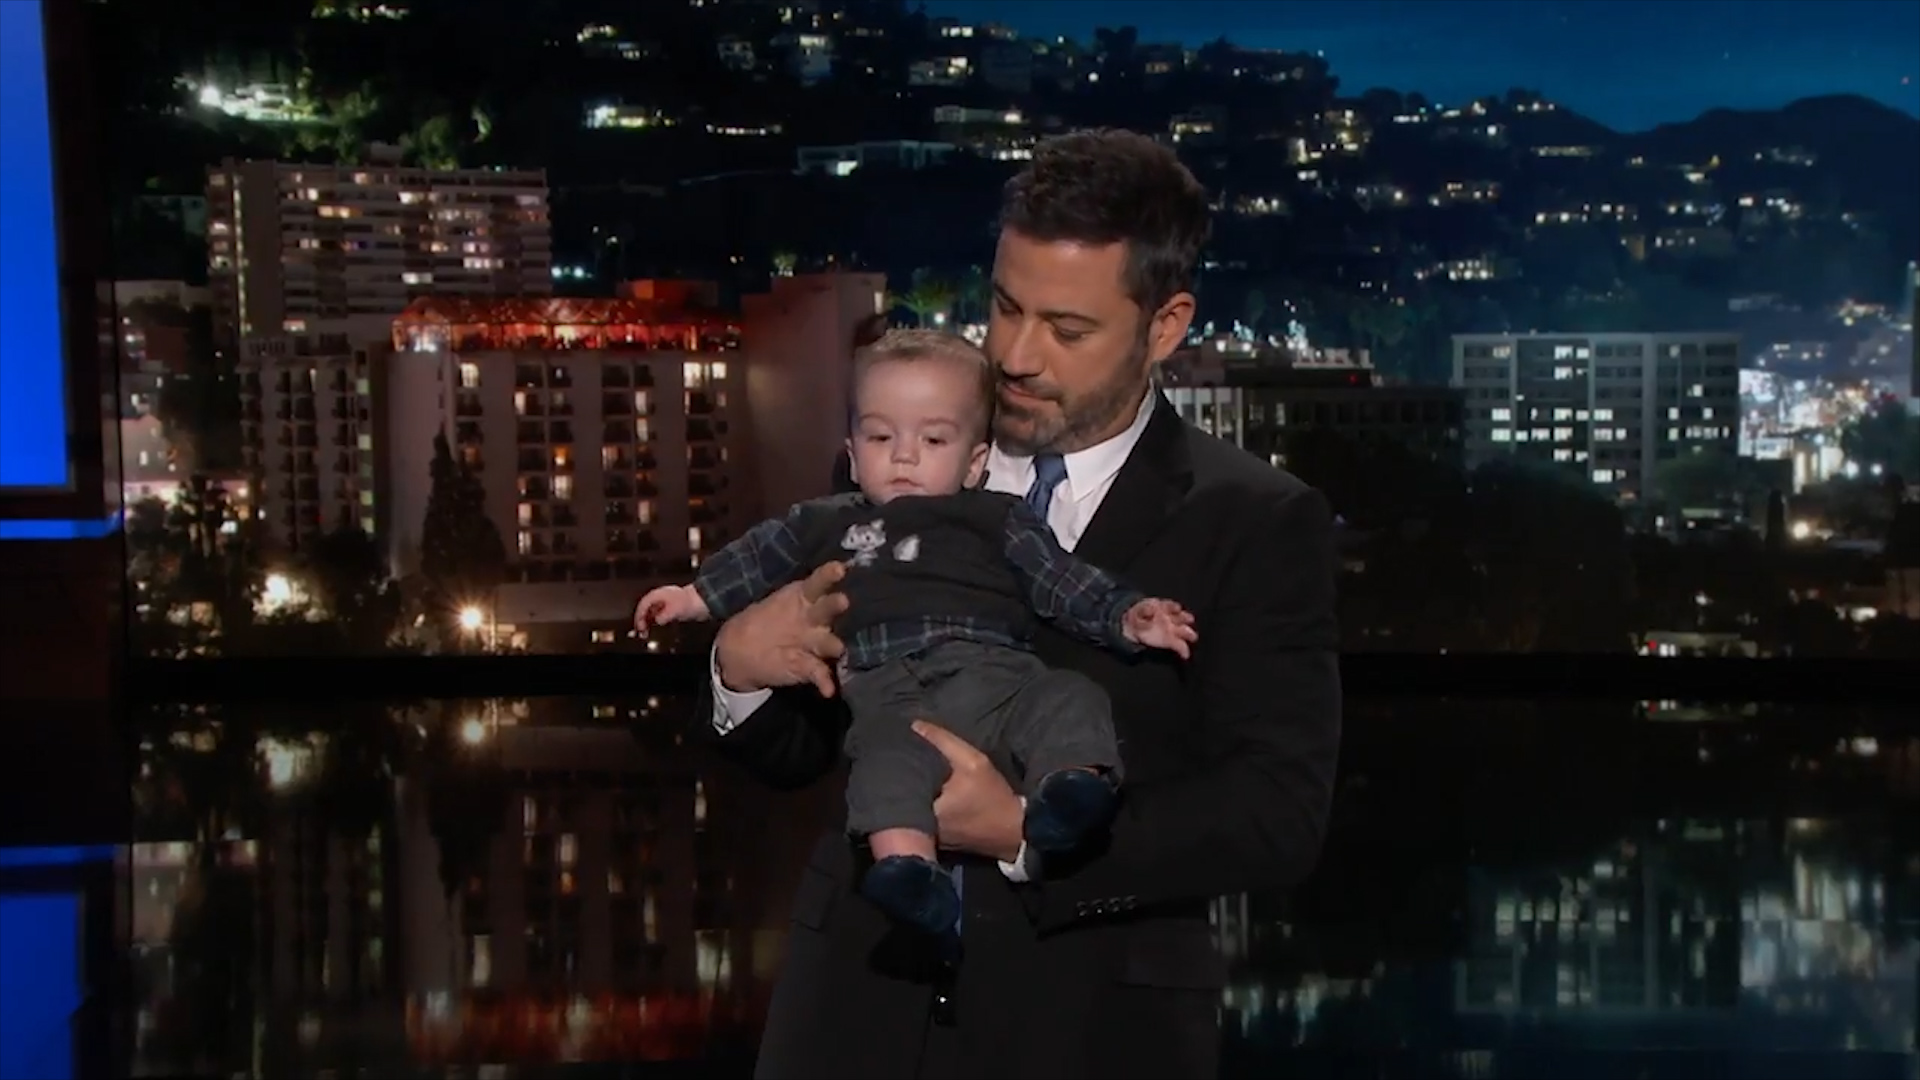 Jimmy Kimmel holds infant son during tearful monologue about children's health care